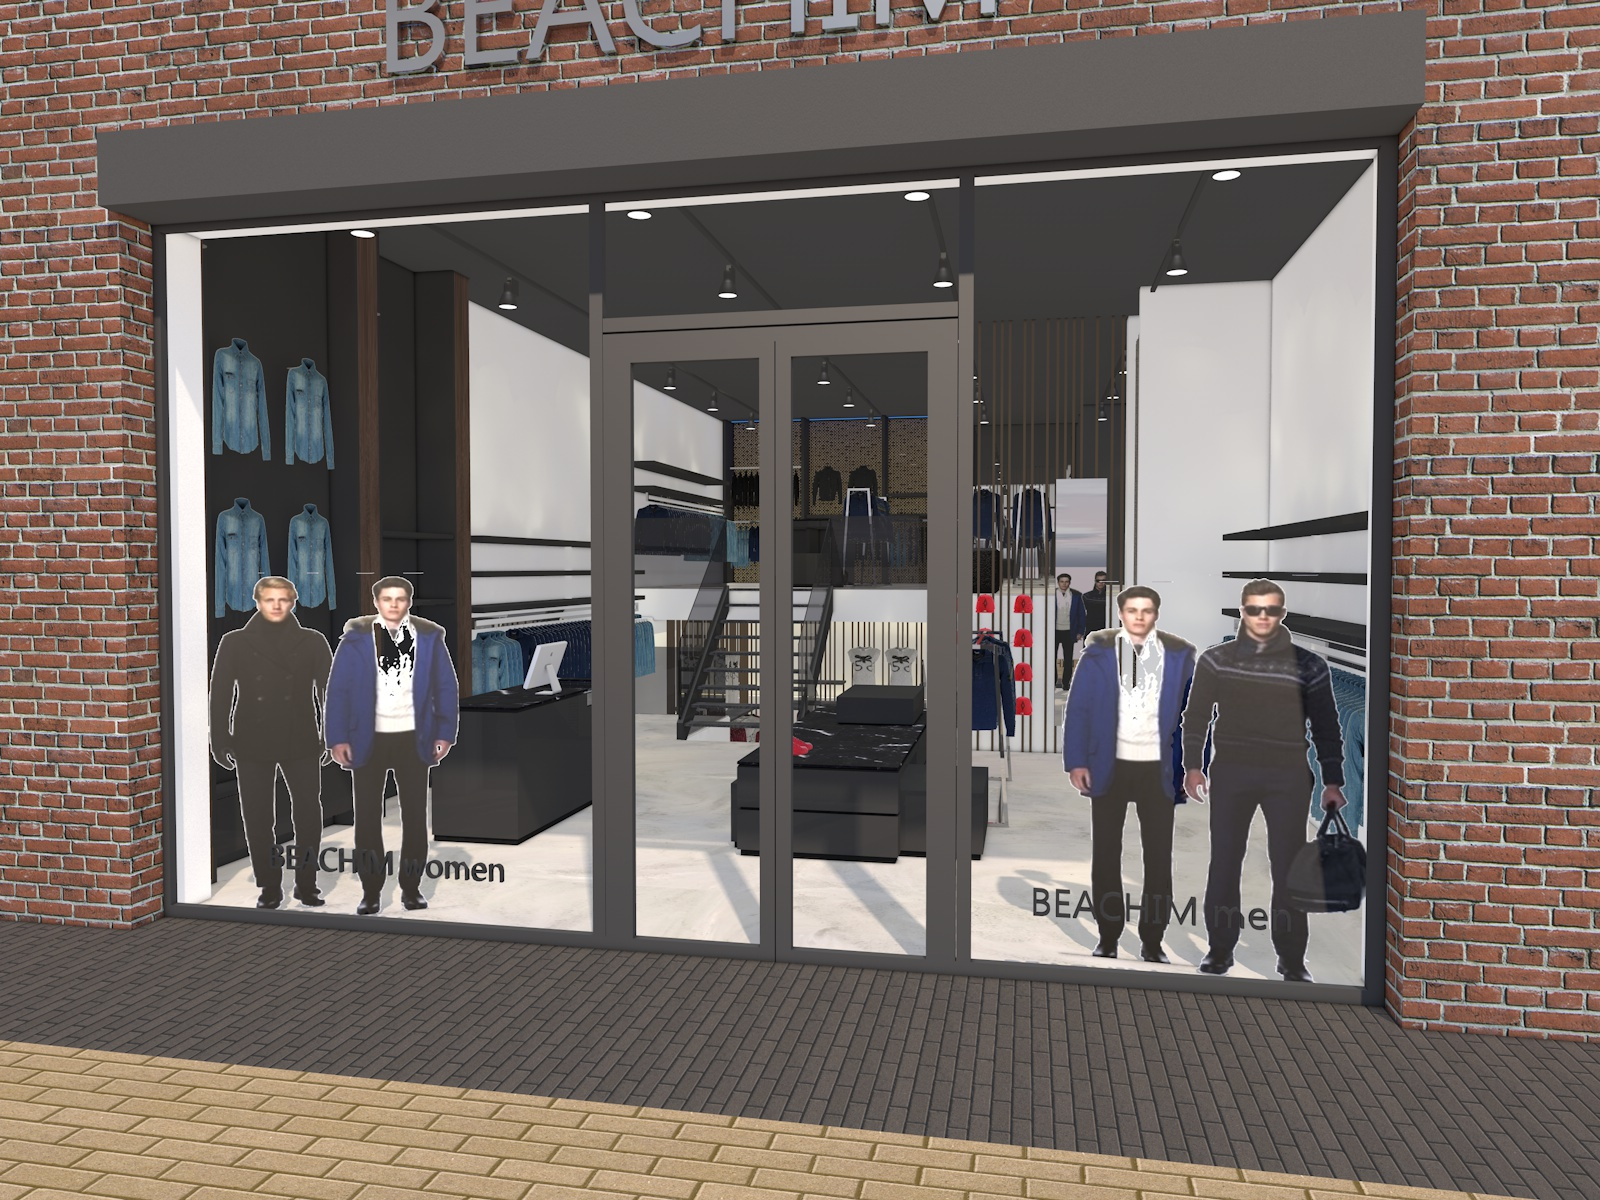 Coming Soon: Interieurconcept multibrandstore Beachim in